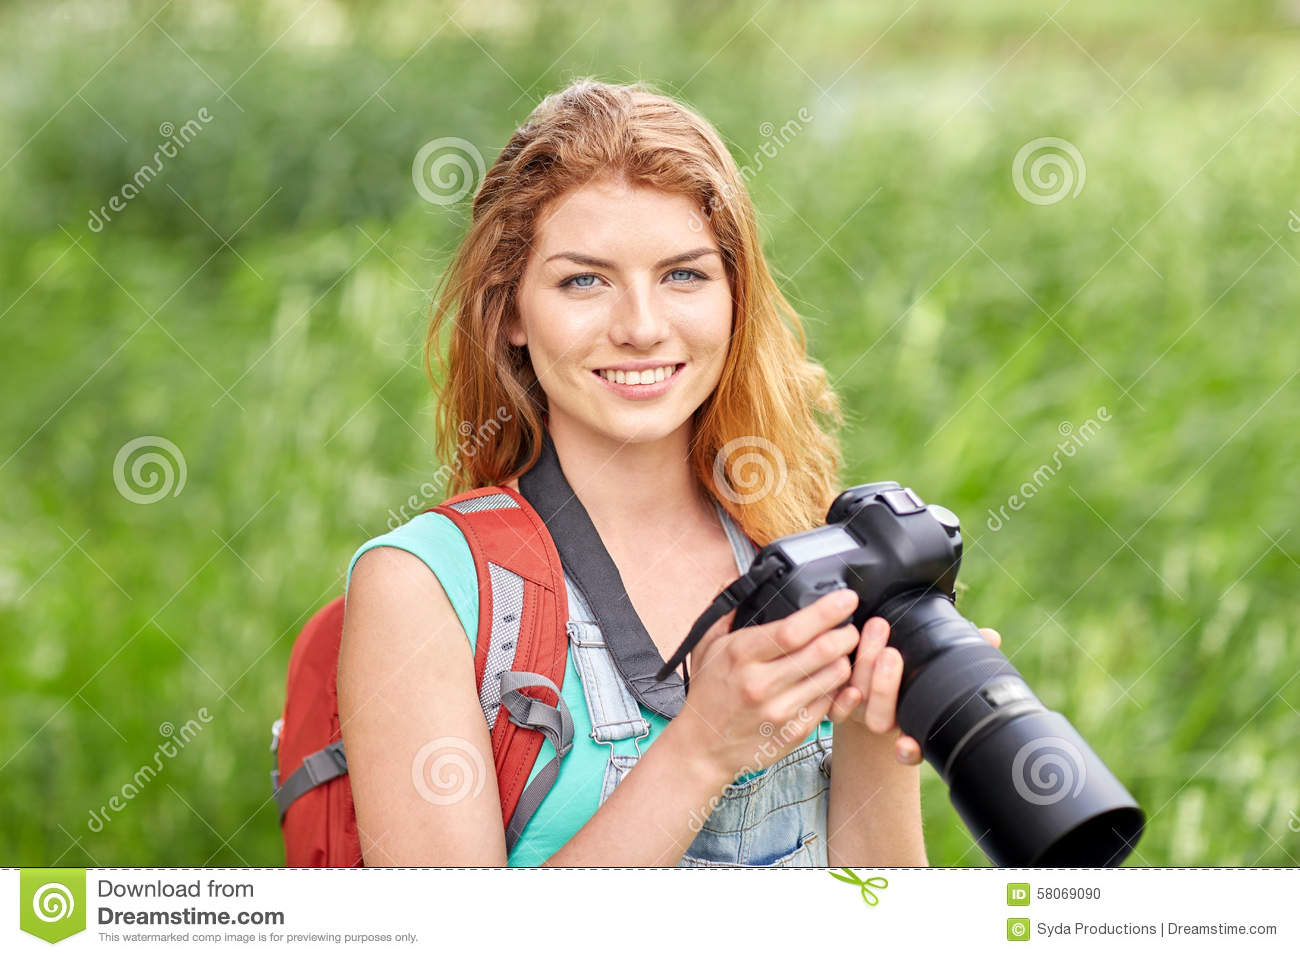 Happy Woman With Backpack And Camera Outdoors Stock Photo ...